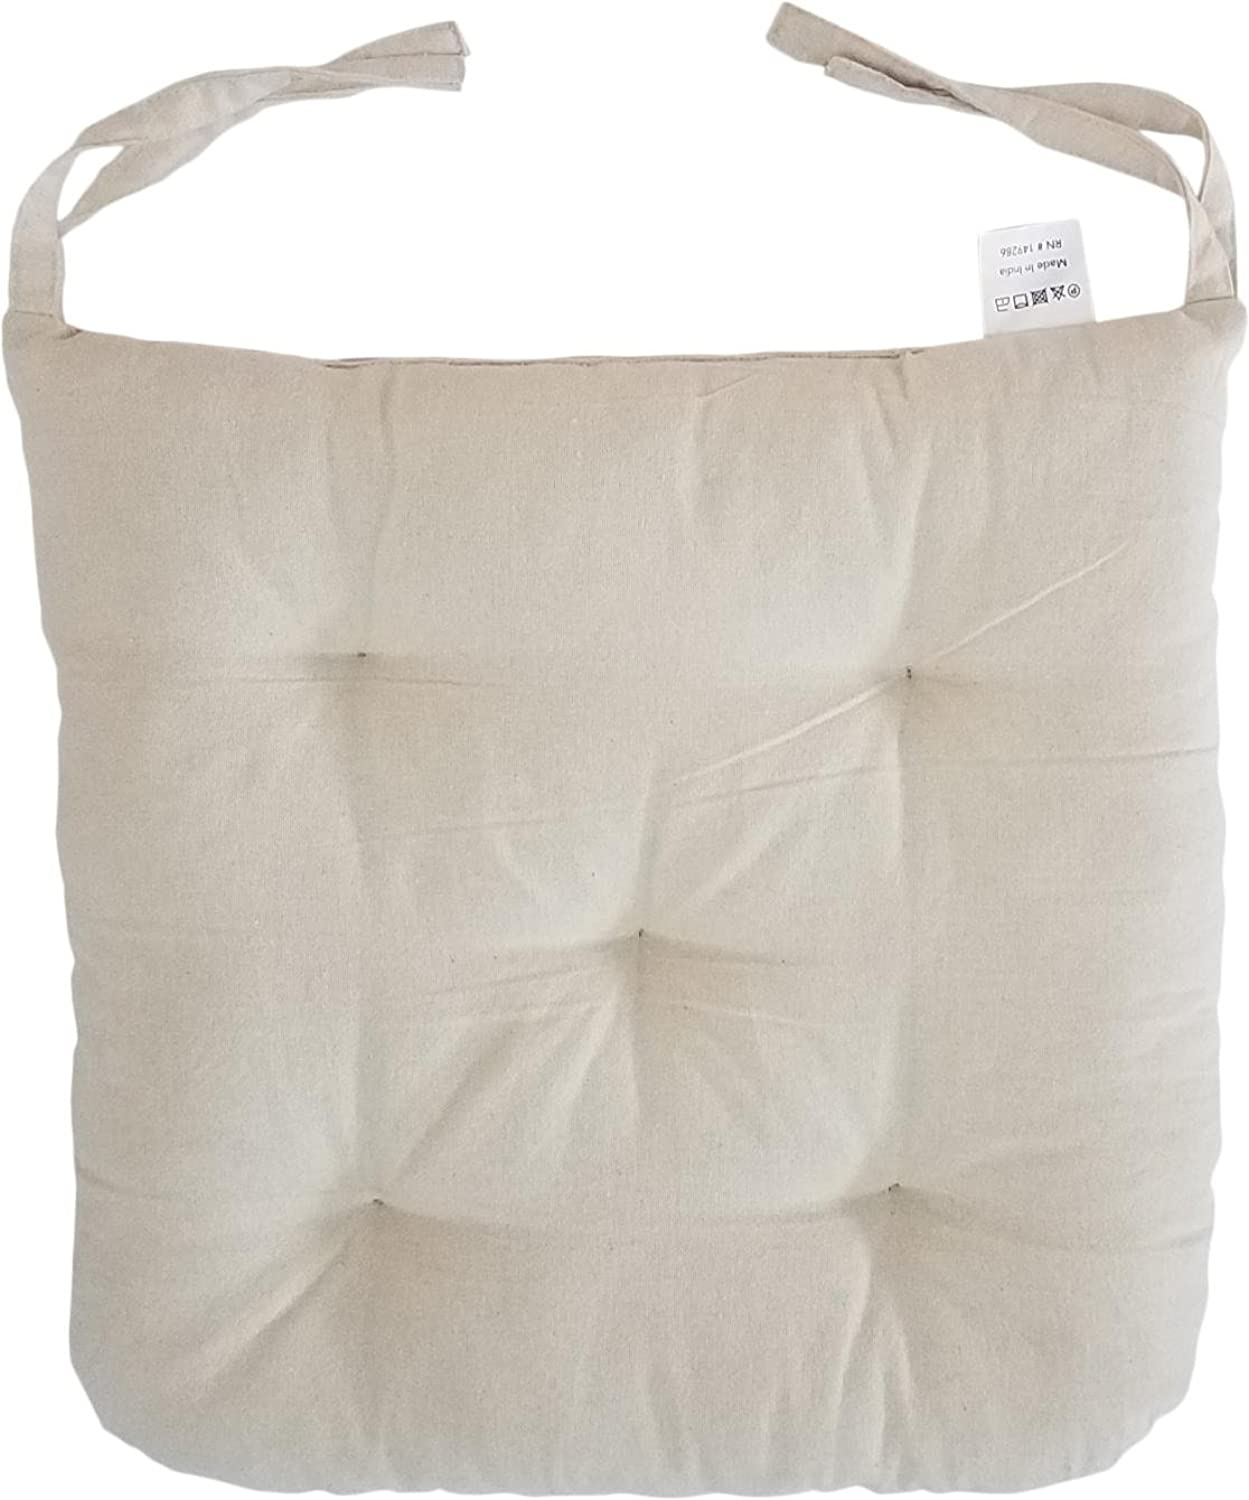 """Cottone 100% Cotton Chair Pads w Ties (Set of 12)   16"""" x 15"""" Round Square   Extra-Comfortable & Soft Seat Cushions   Ergonomic Pillows for Rocking, Dining, Patio, Camping, Kitchen Chairs (Beige)"""